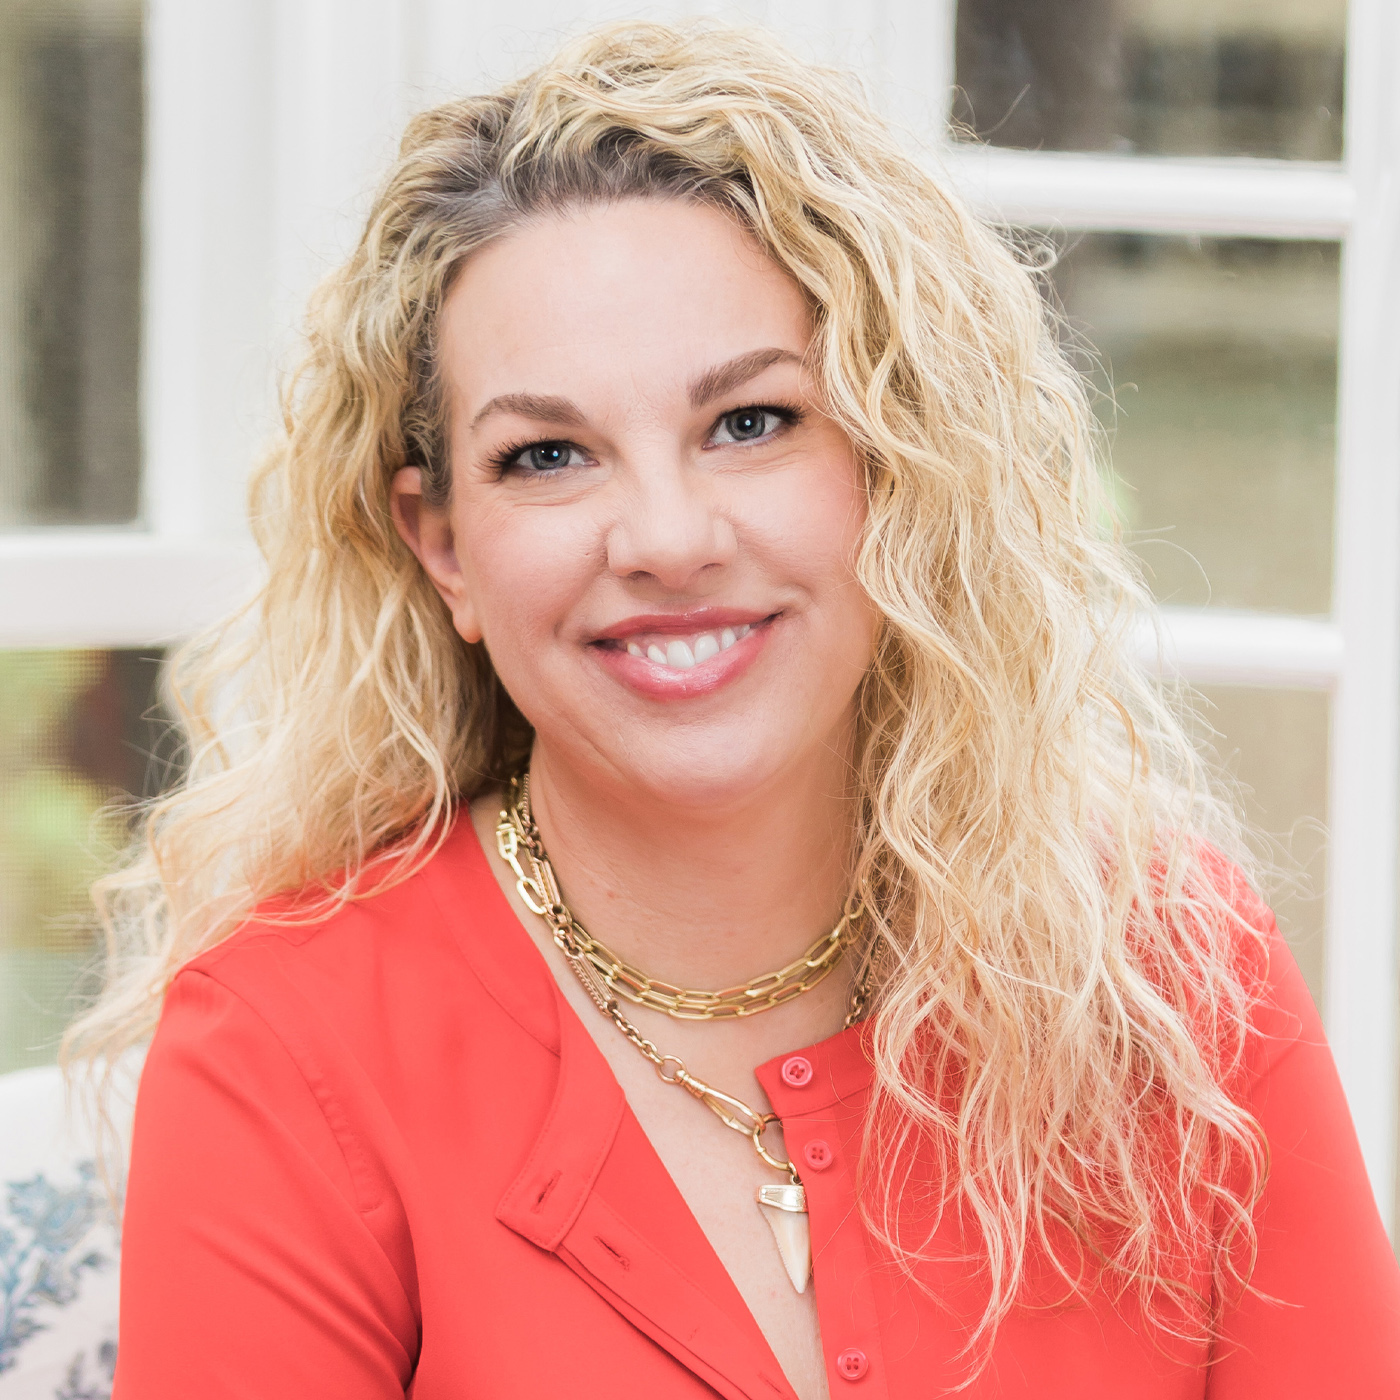 Dr Tina Payne Bryson: The Power of Showing Up - Part 2